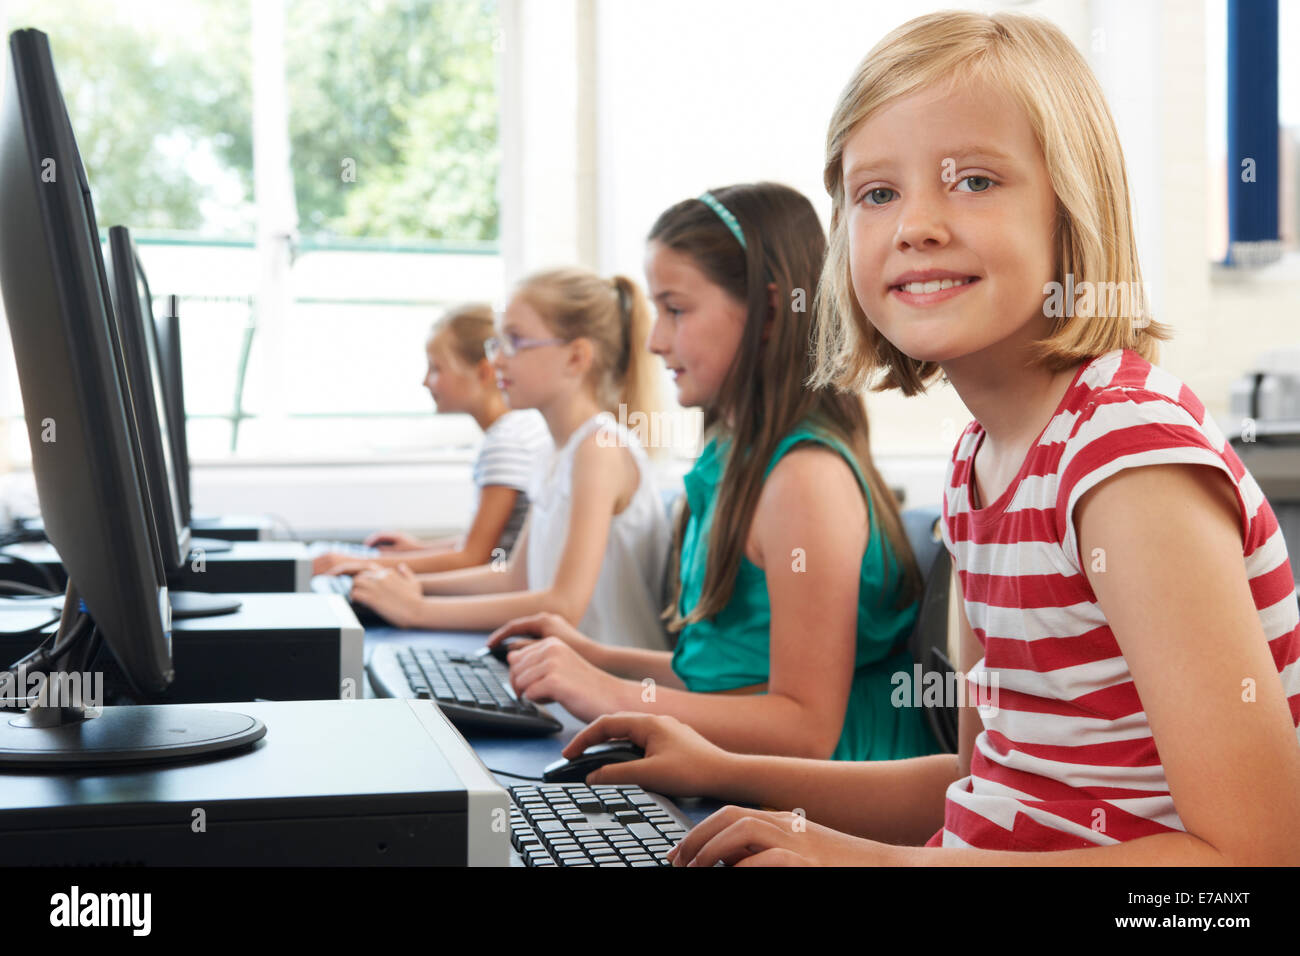 Group Of Female Elementary School Children In Computer Class - Stock Image